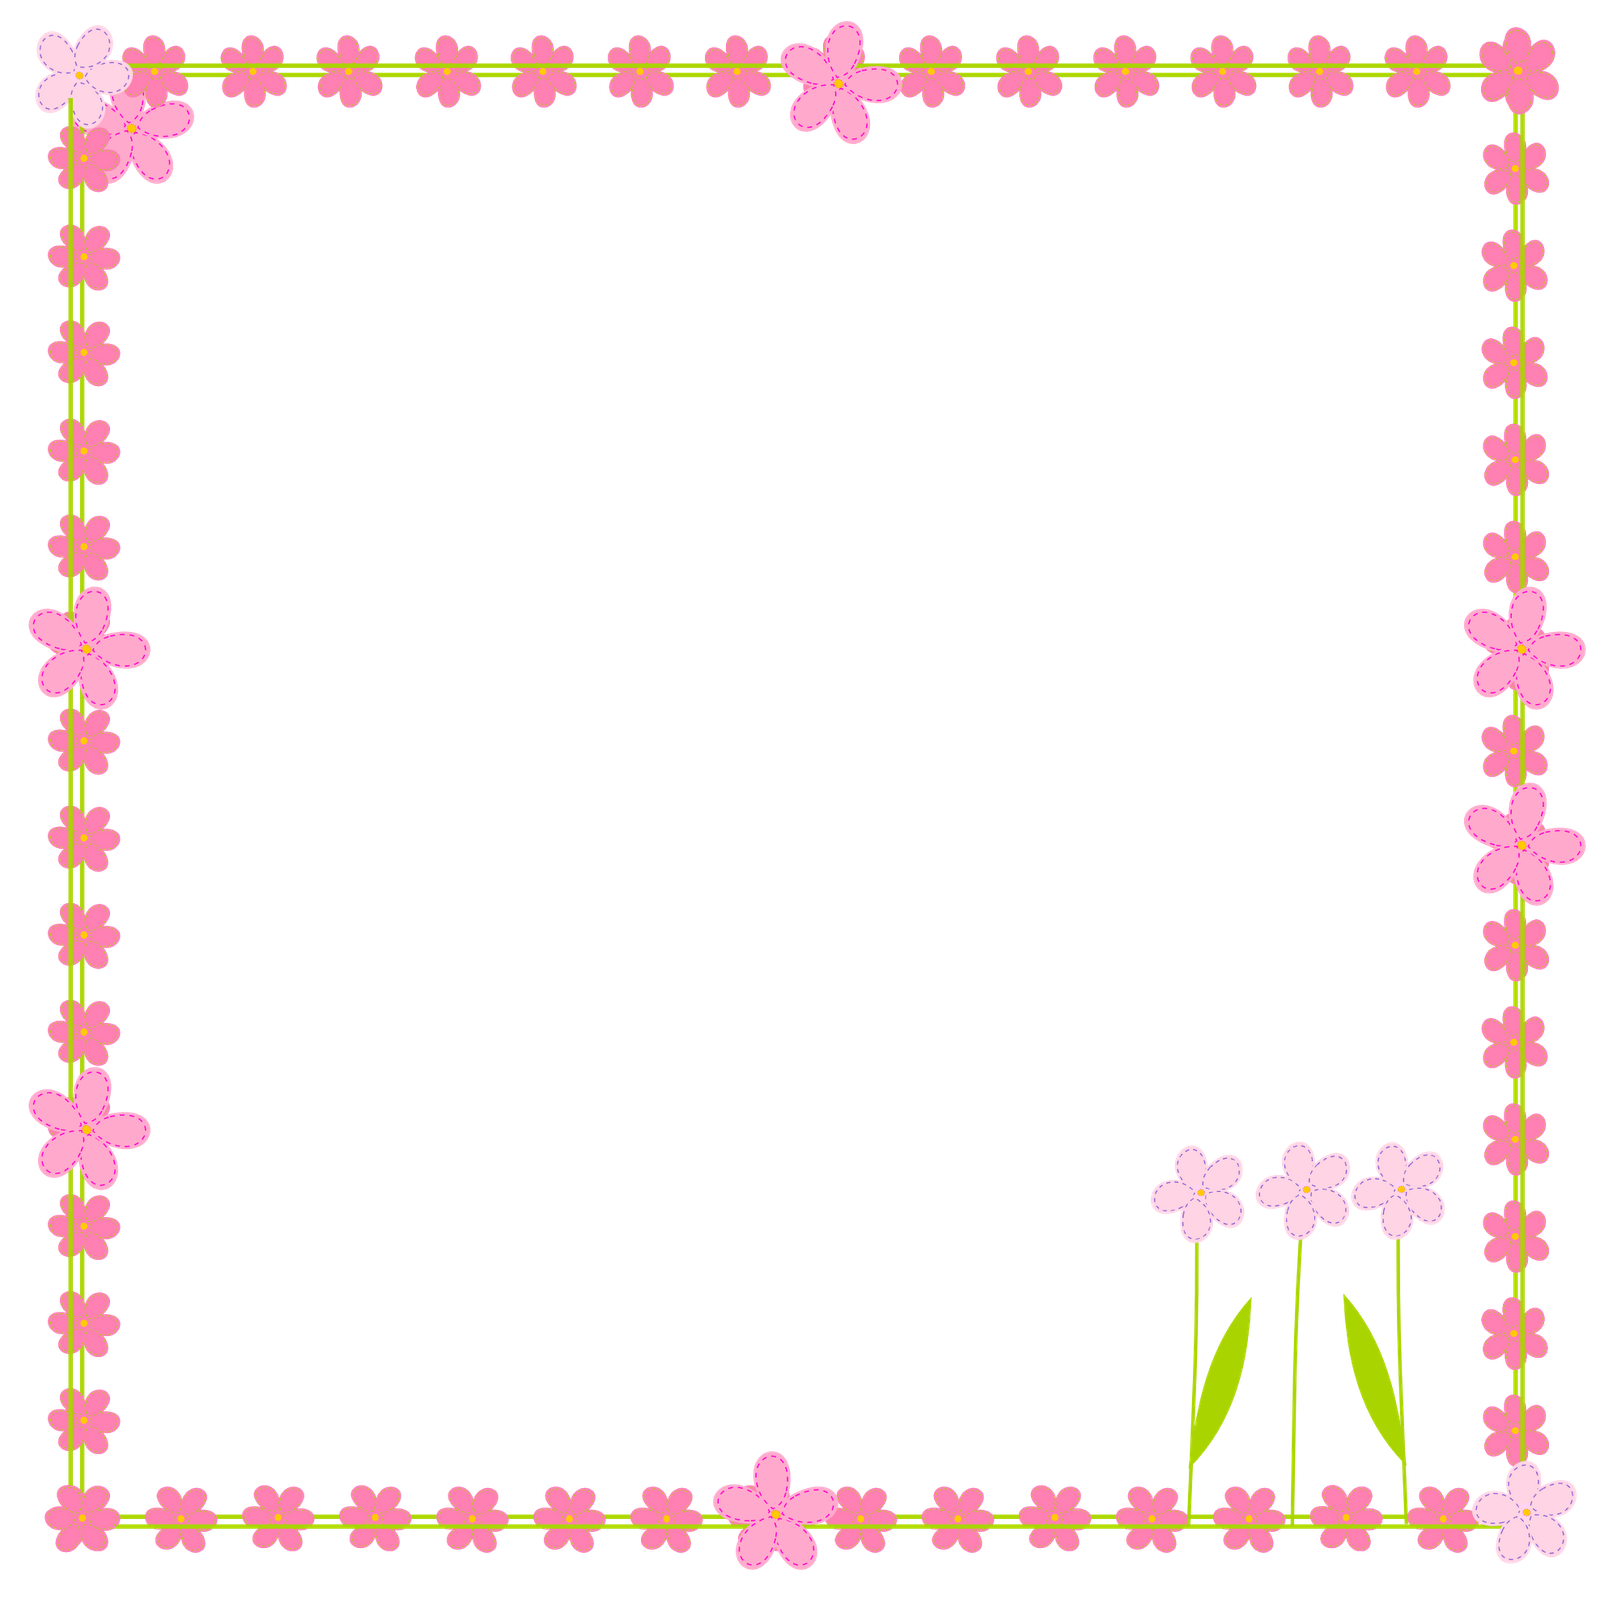 Crown clipart pink png library Pink Flower Border Clip Art | Clipart Panda - Free Clipart Images png library